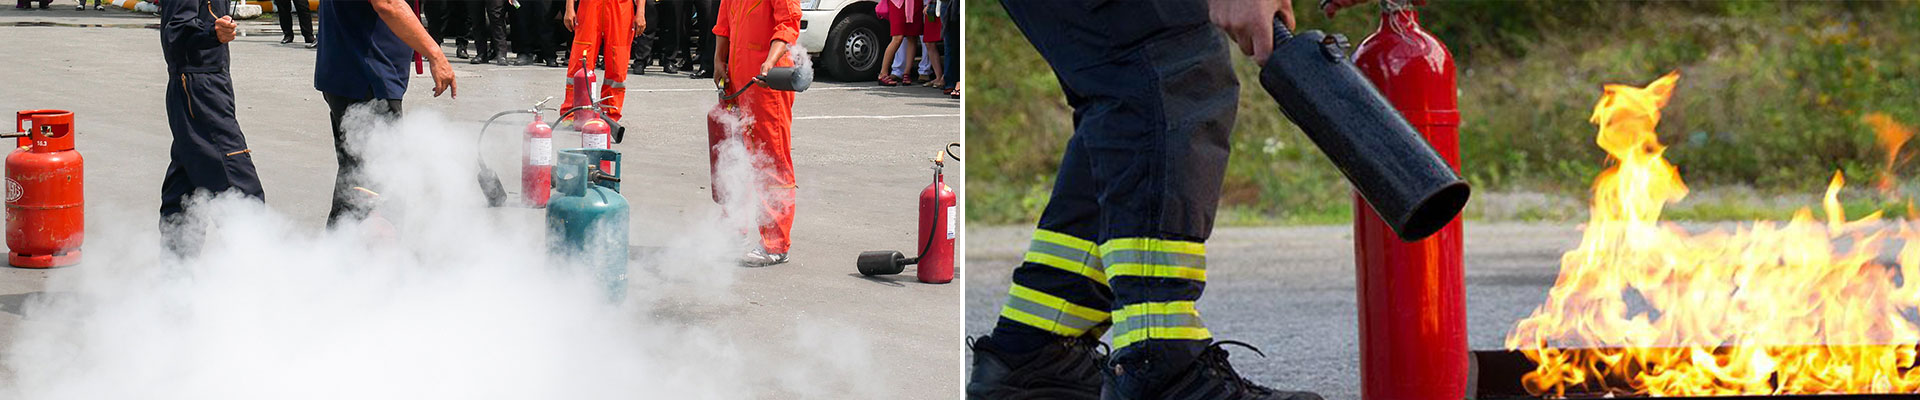 formation anti incendie